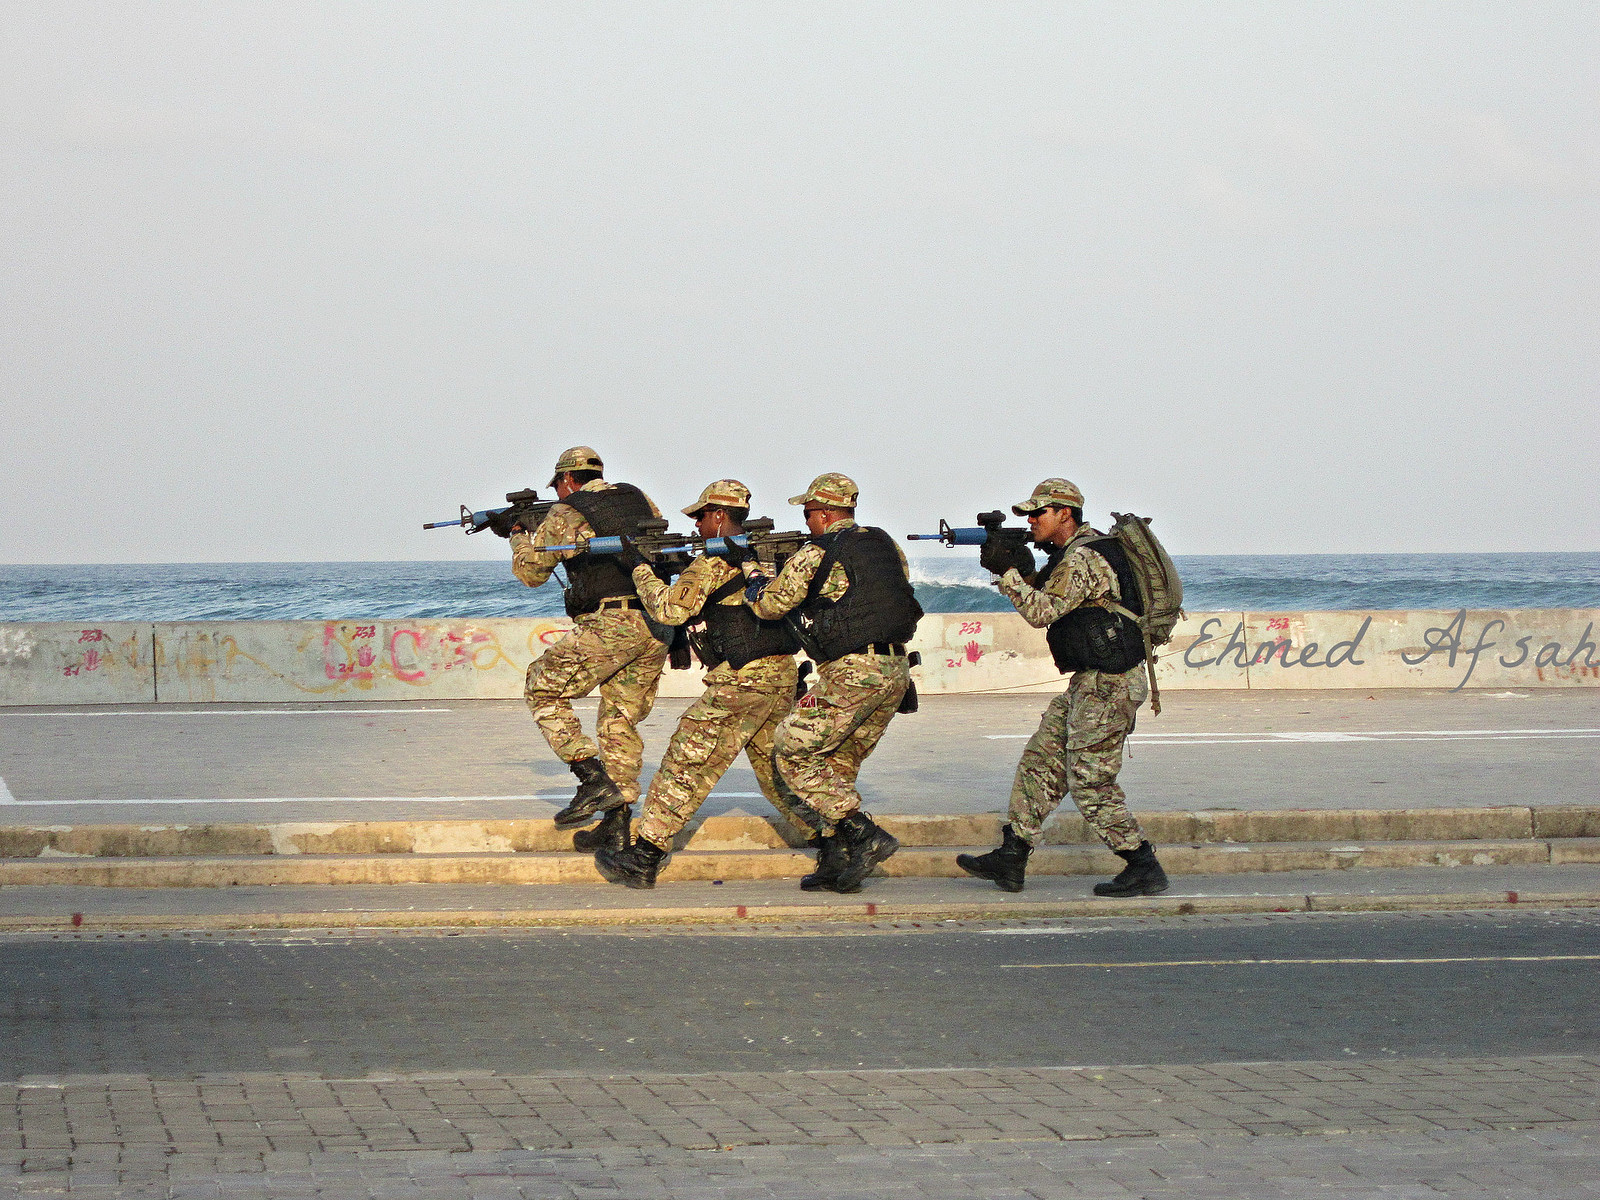 Maldivian Special forces show off their skills during a demonstration in 2012